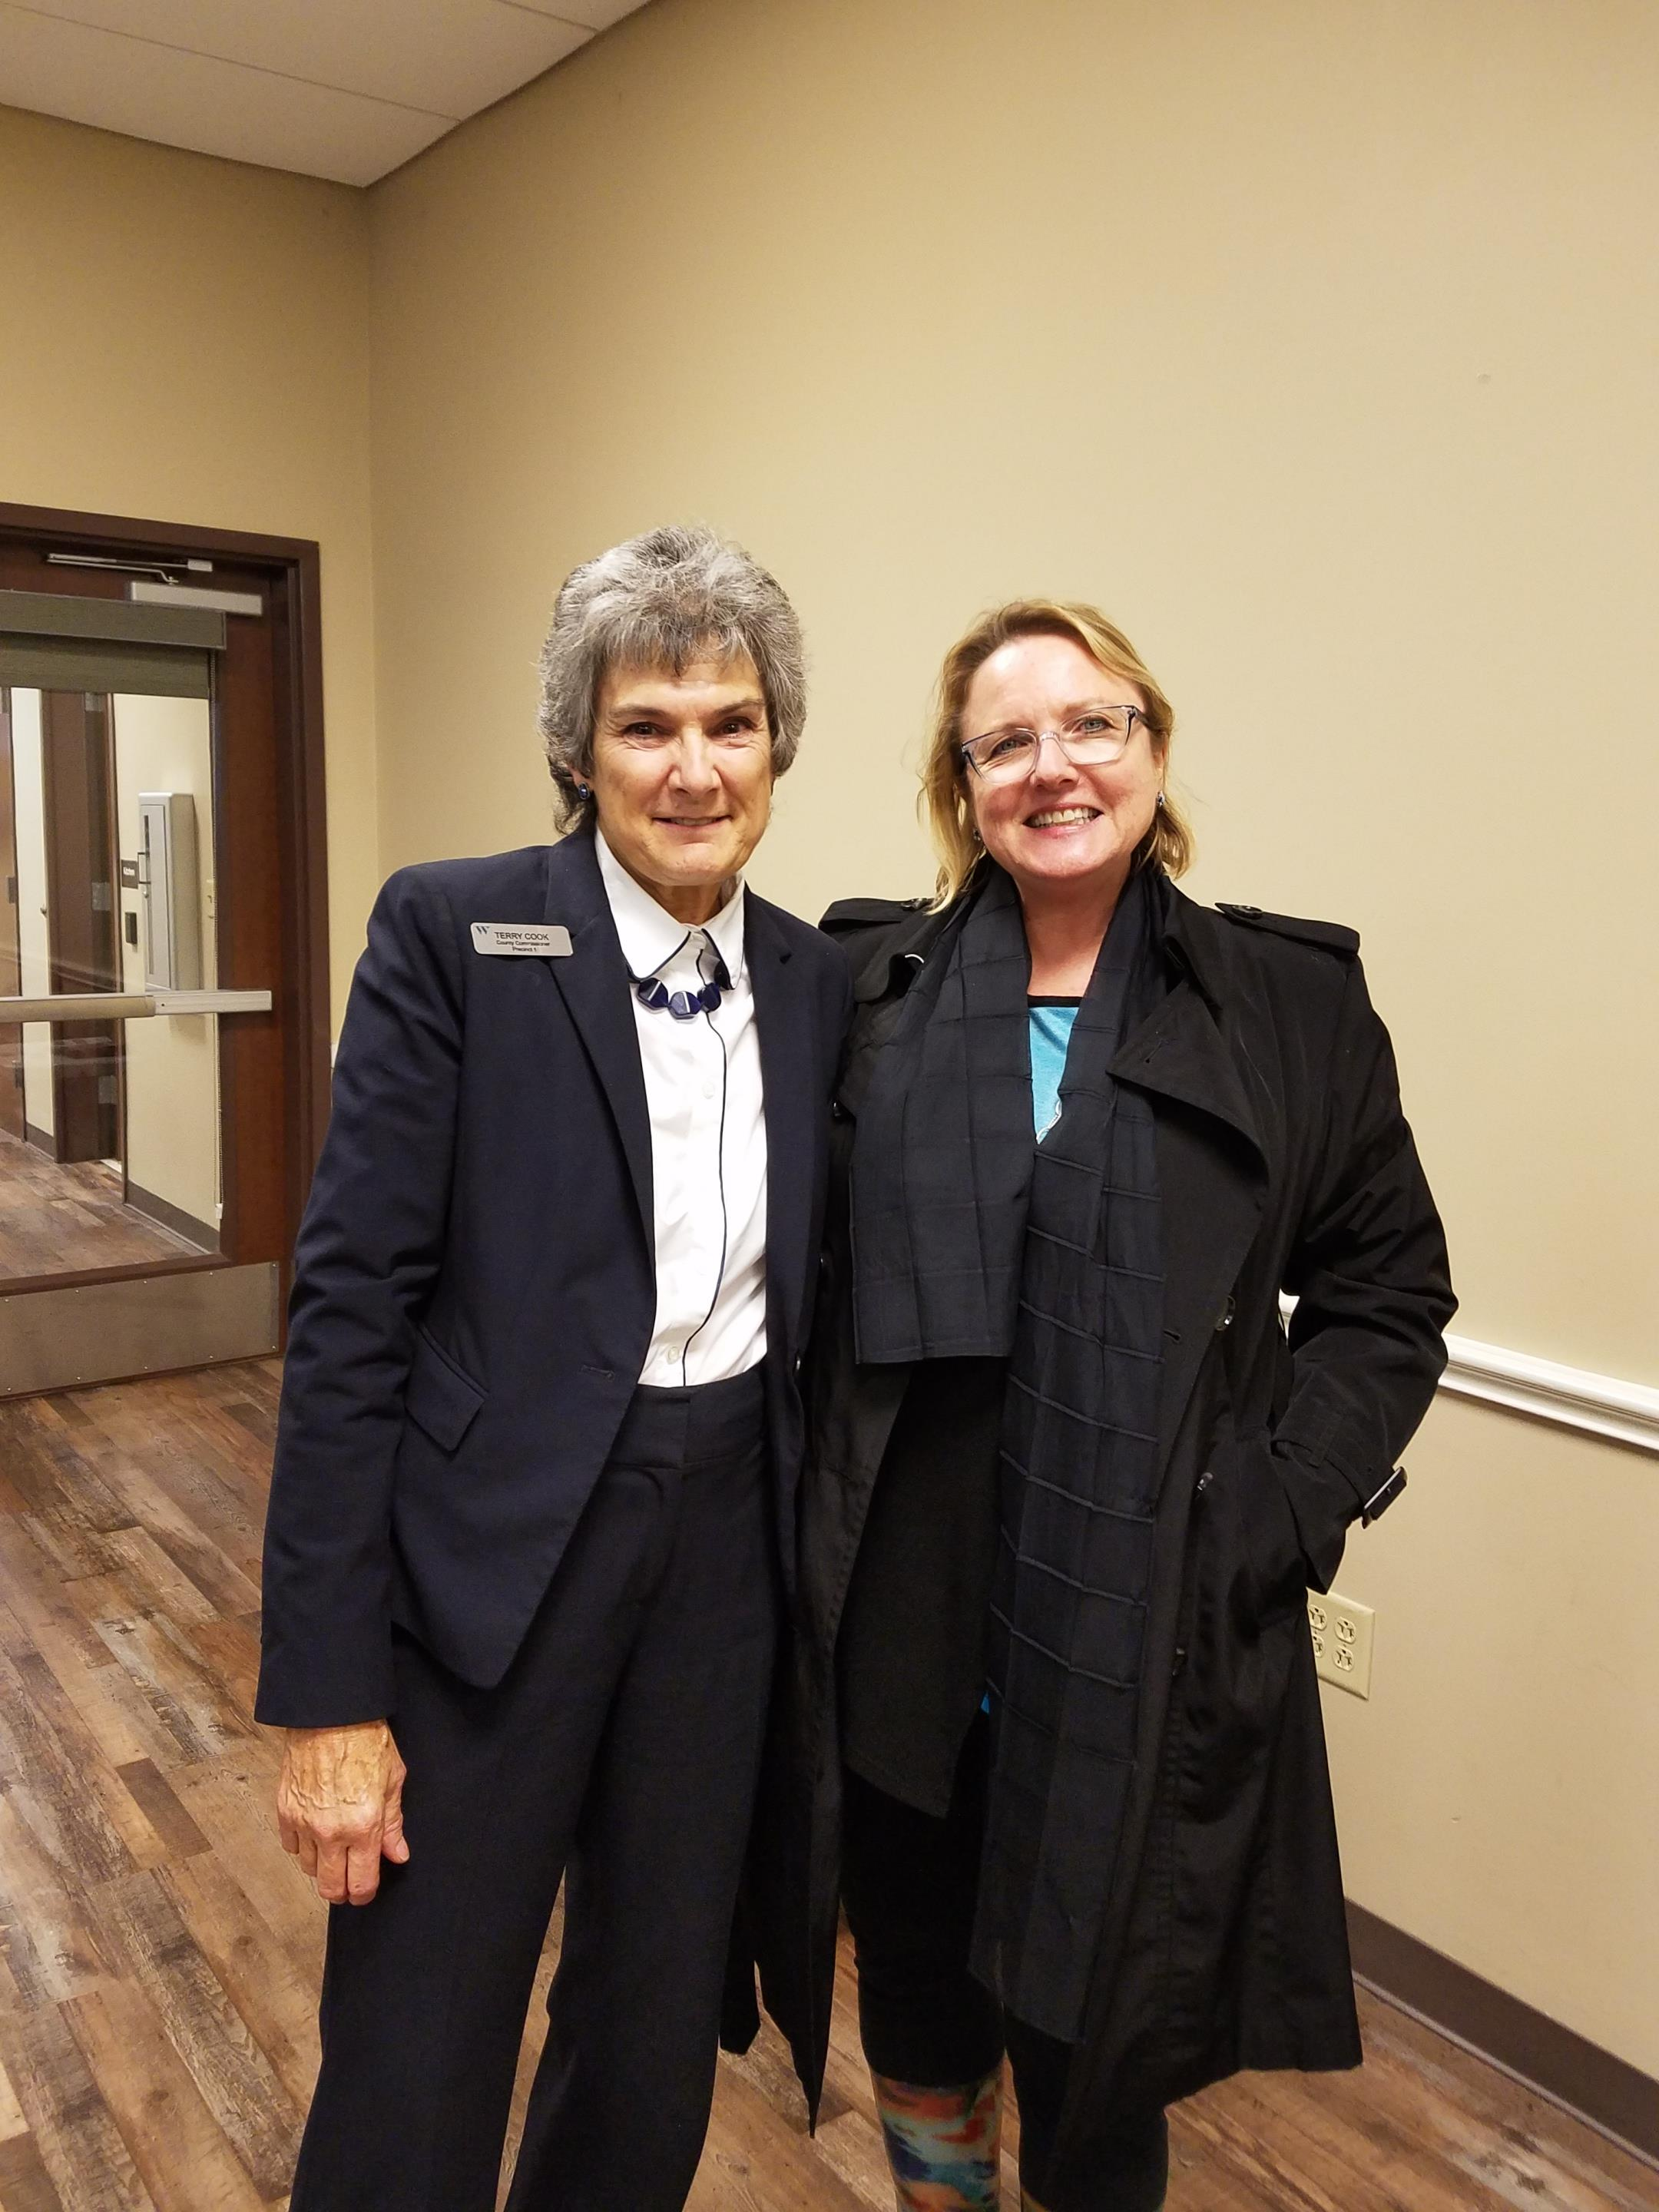 Commissioner Cook is shown with Rattan Creek Neighborhood Association President April Bliss.